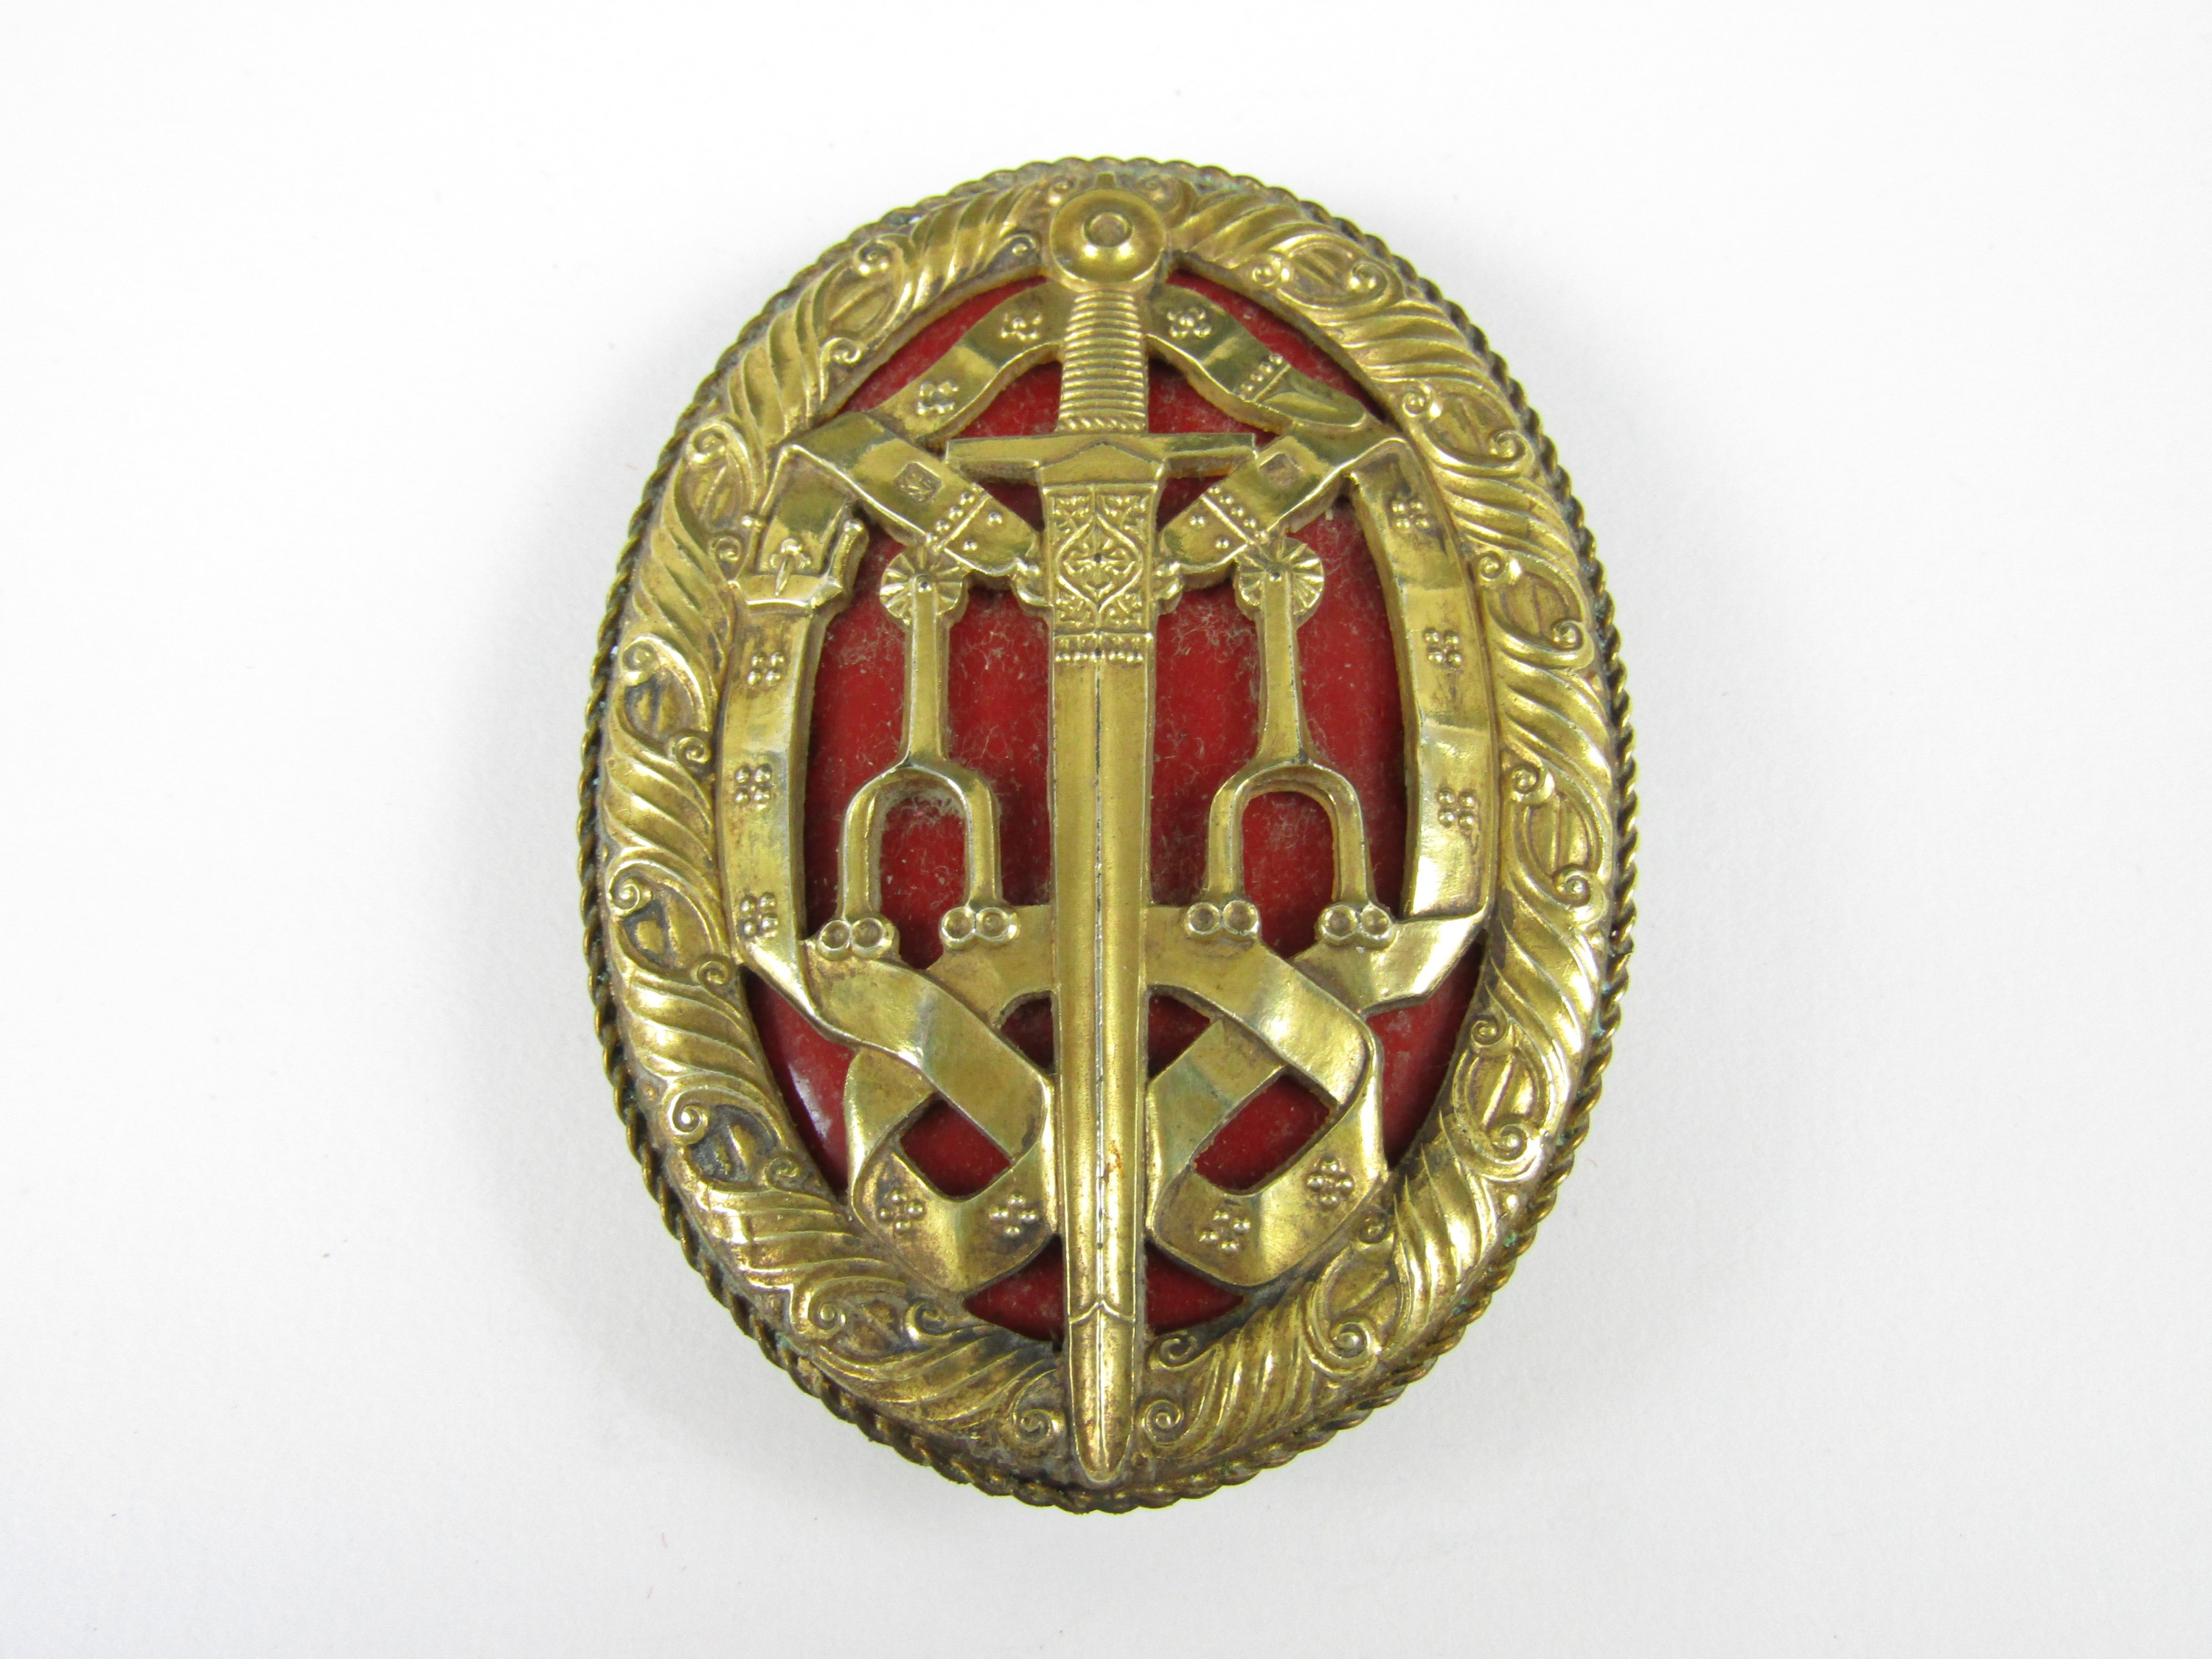 Lot 30 - A Knight Batchelor's Badge, 1948